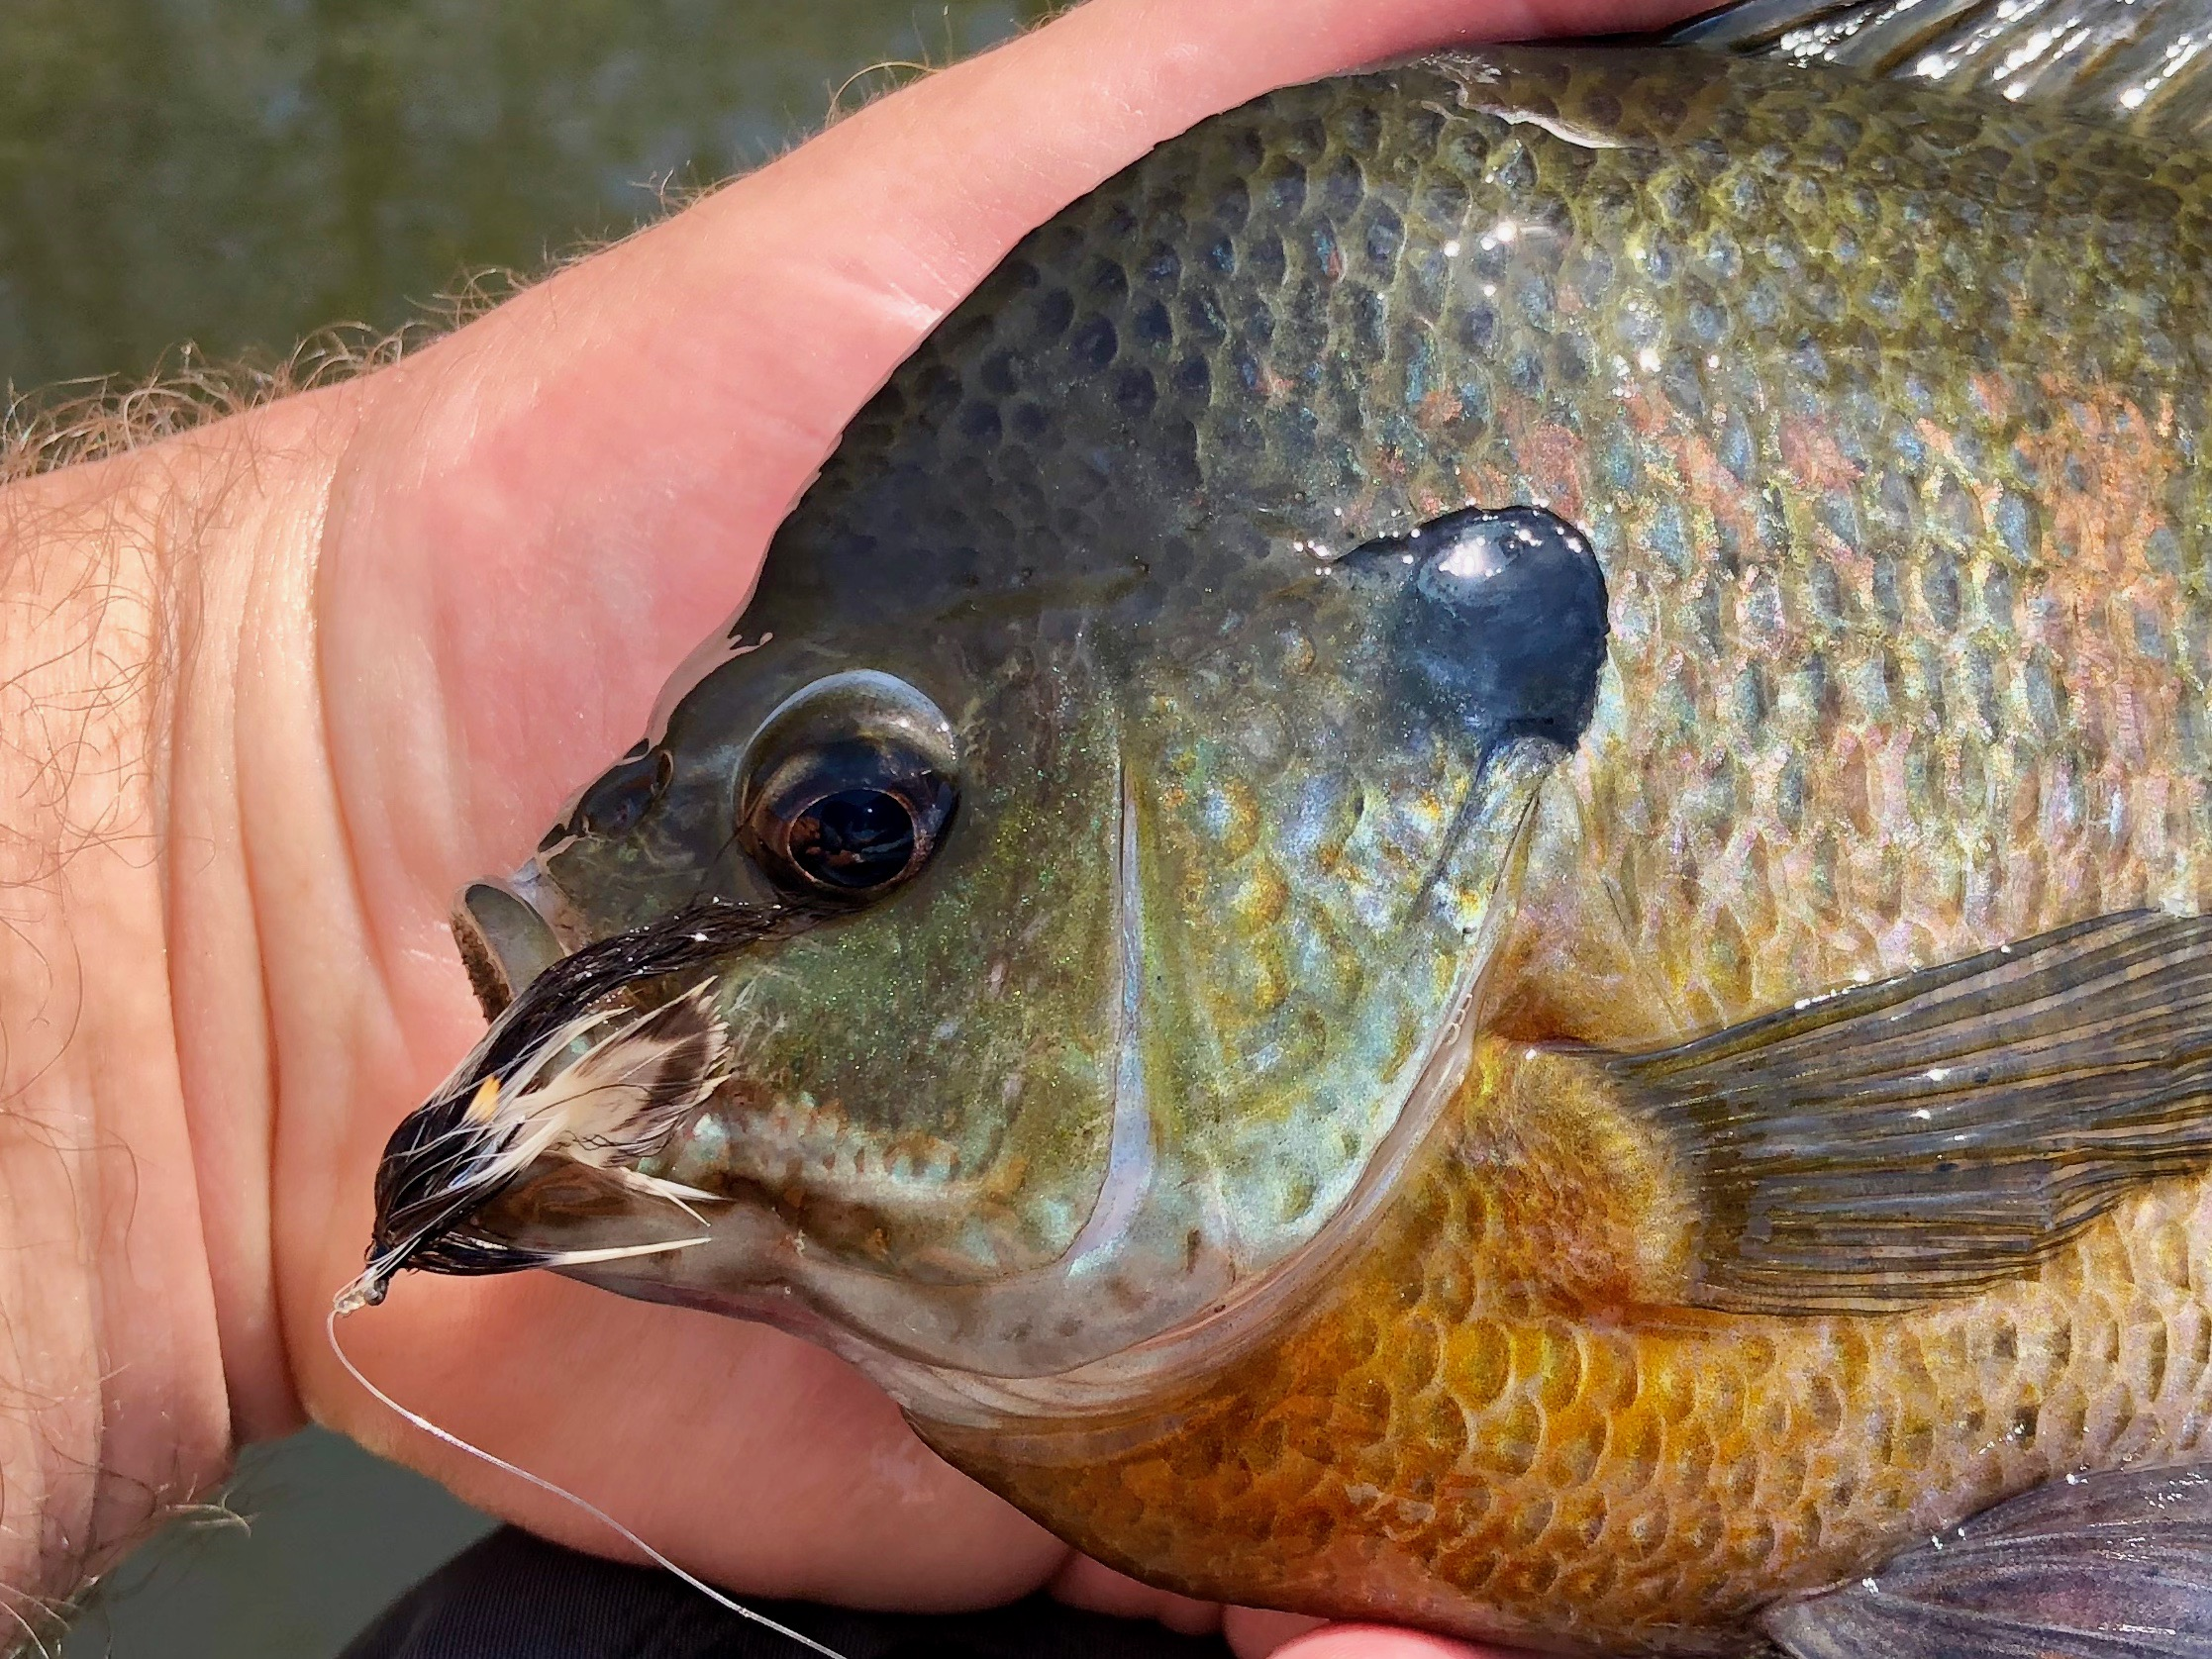 Large bluegills will take small streamers with gusto!